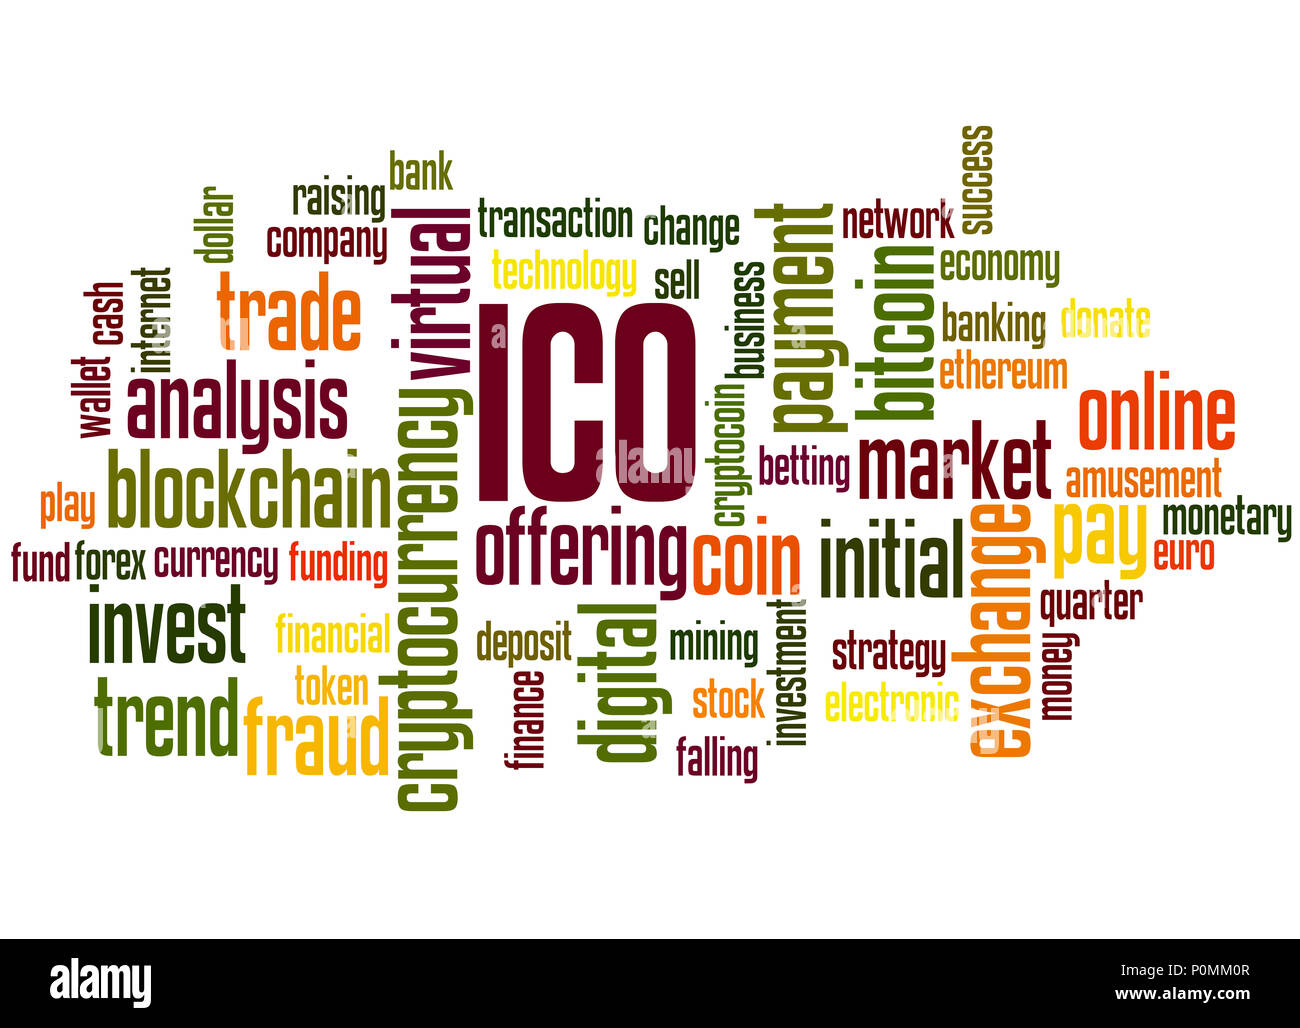 ICO (Initial coin offering) word cloud concept on white background. - Stock Image